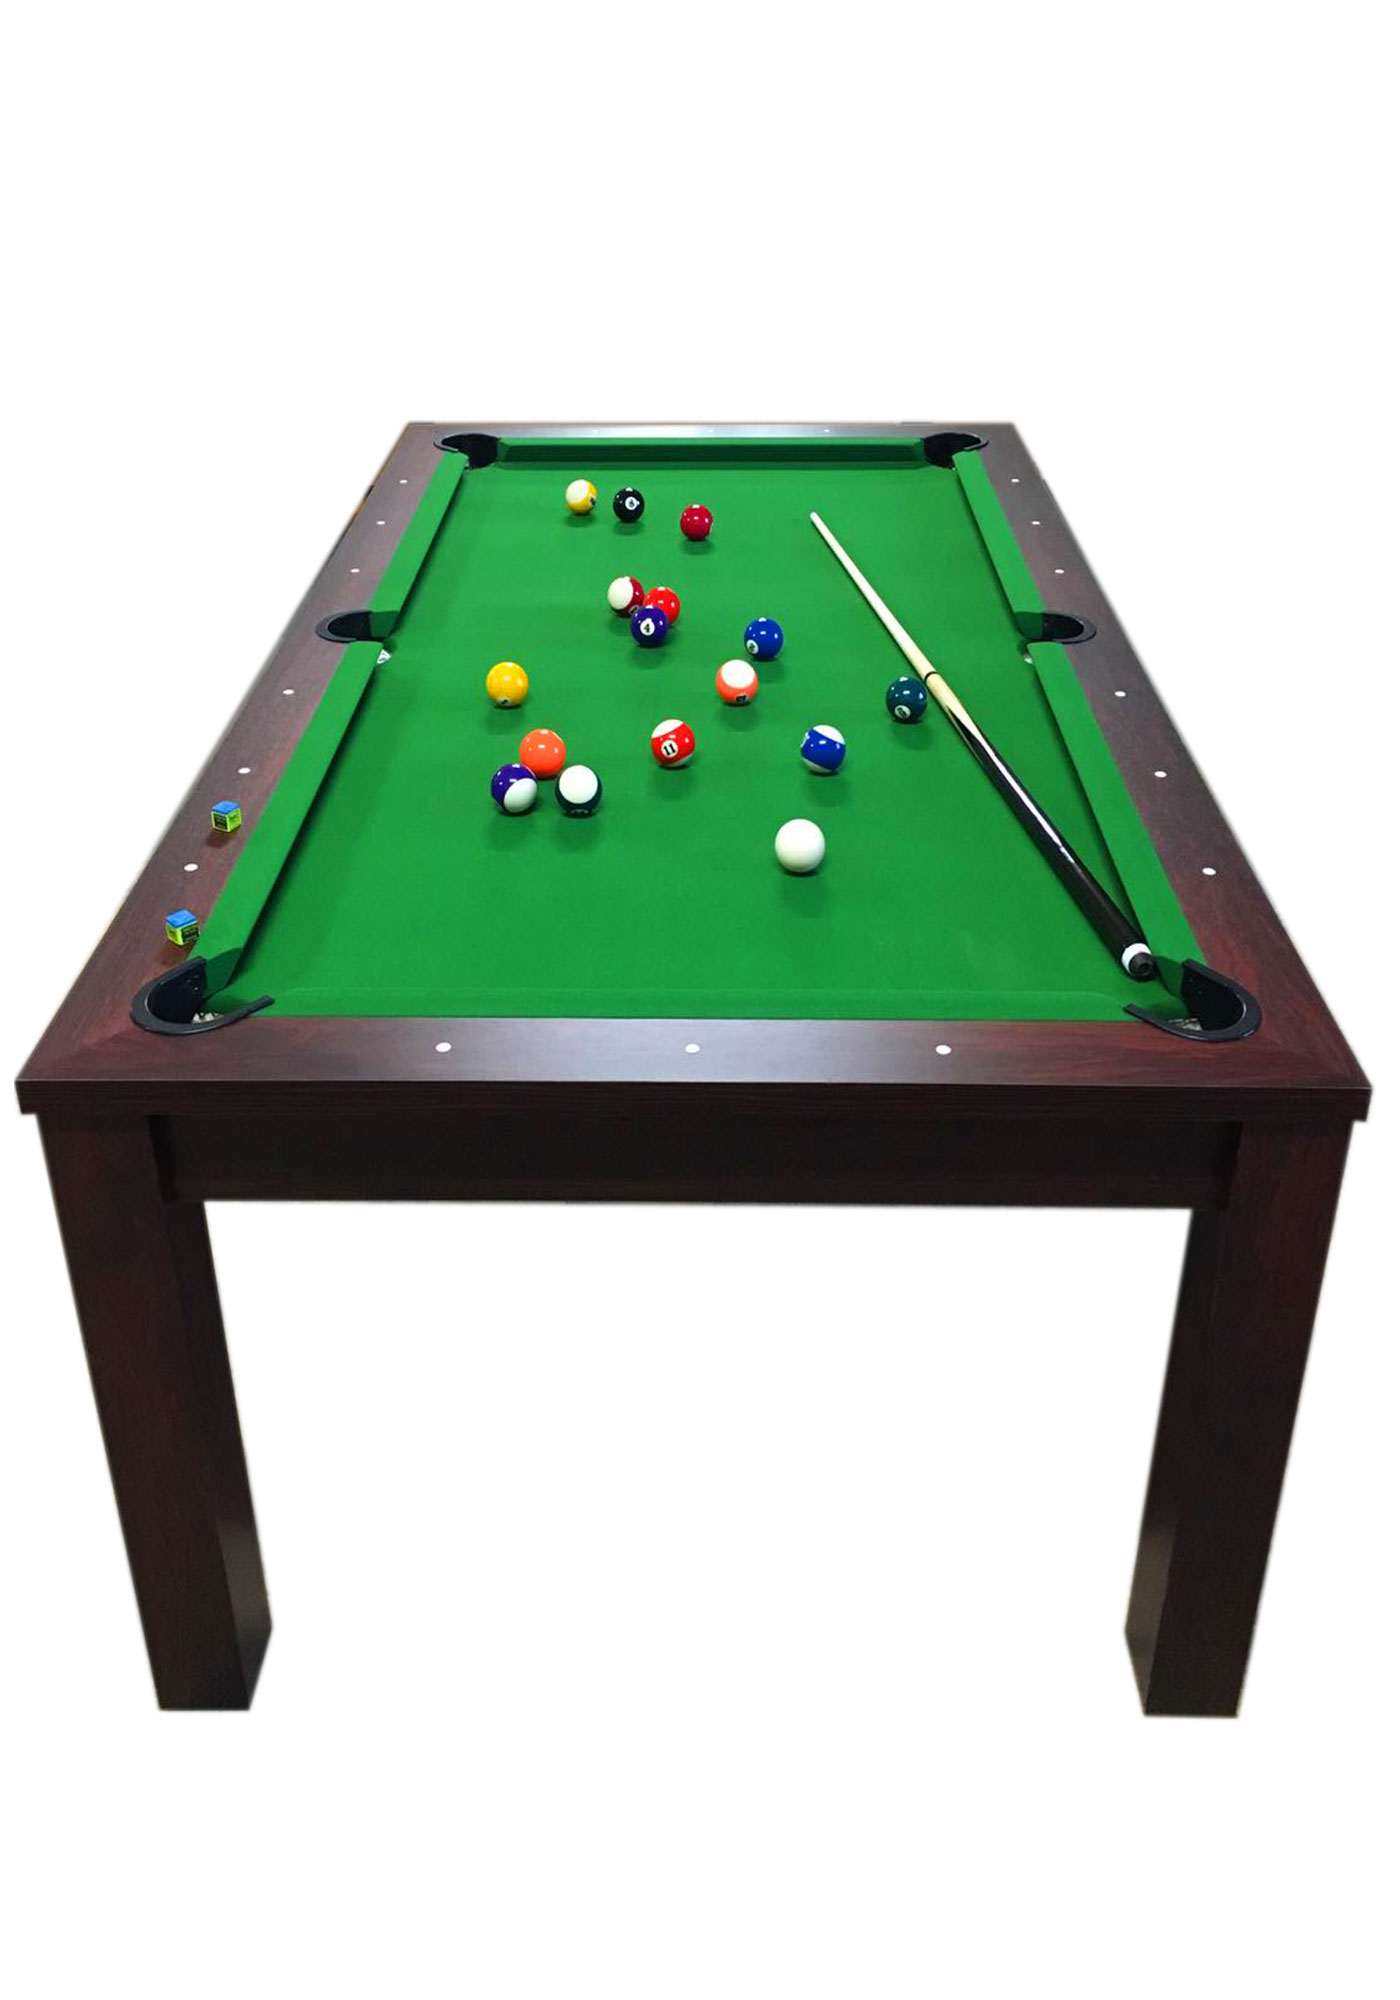 pool table 7' feet green and dining table  missisipi